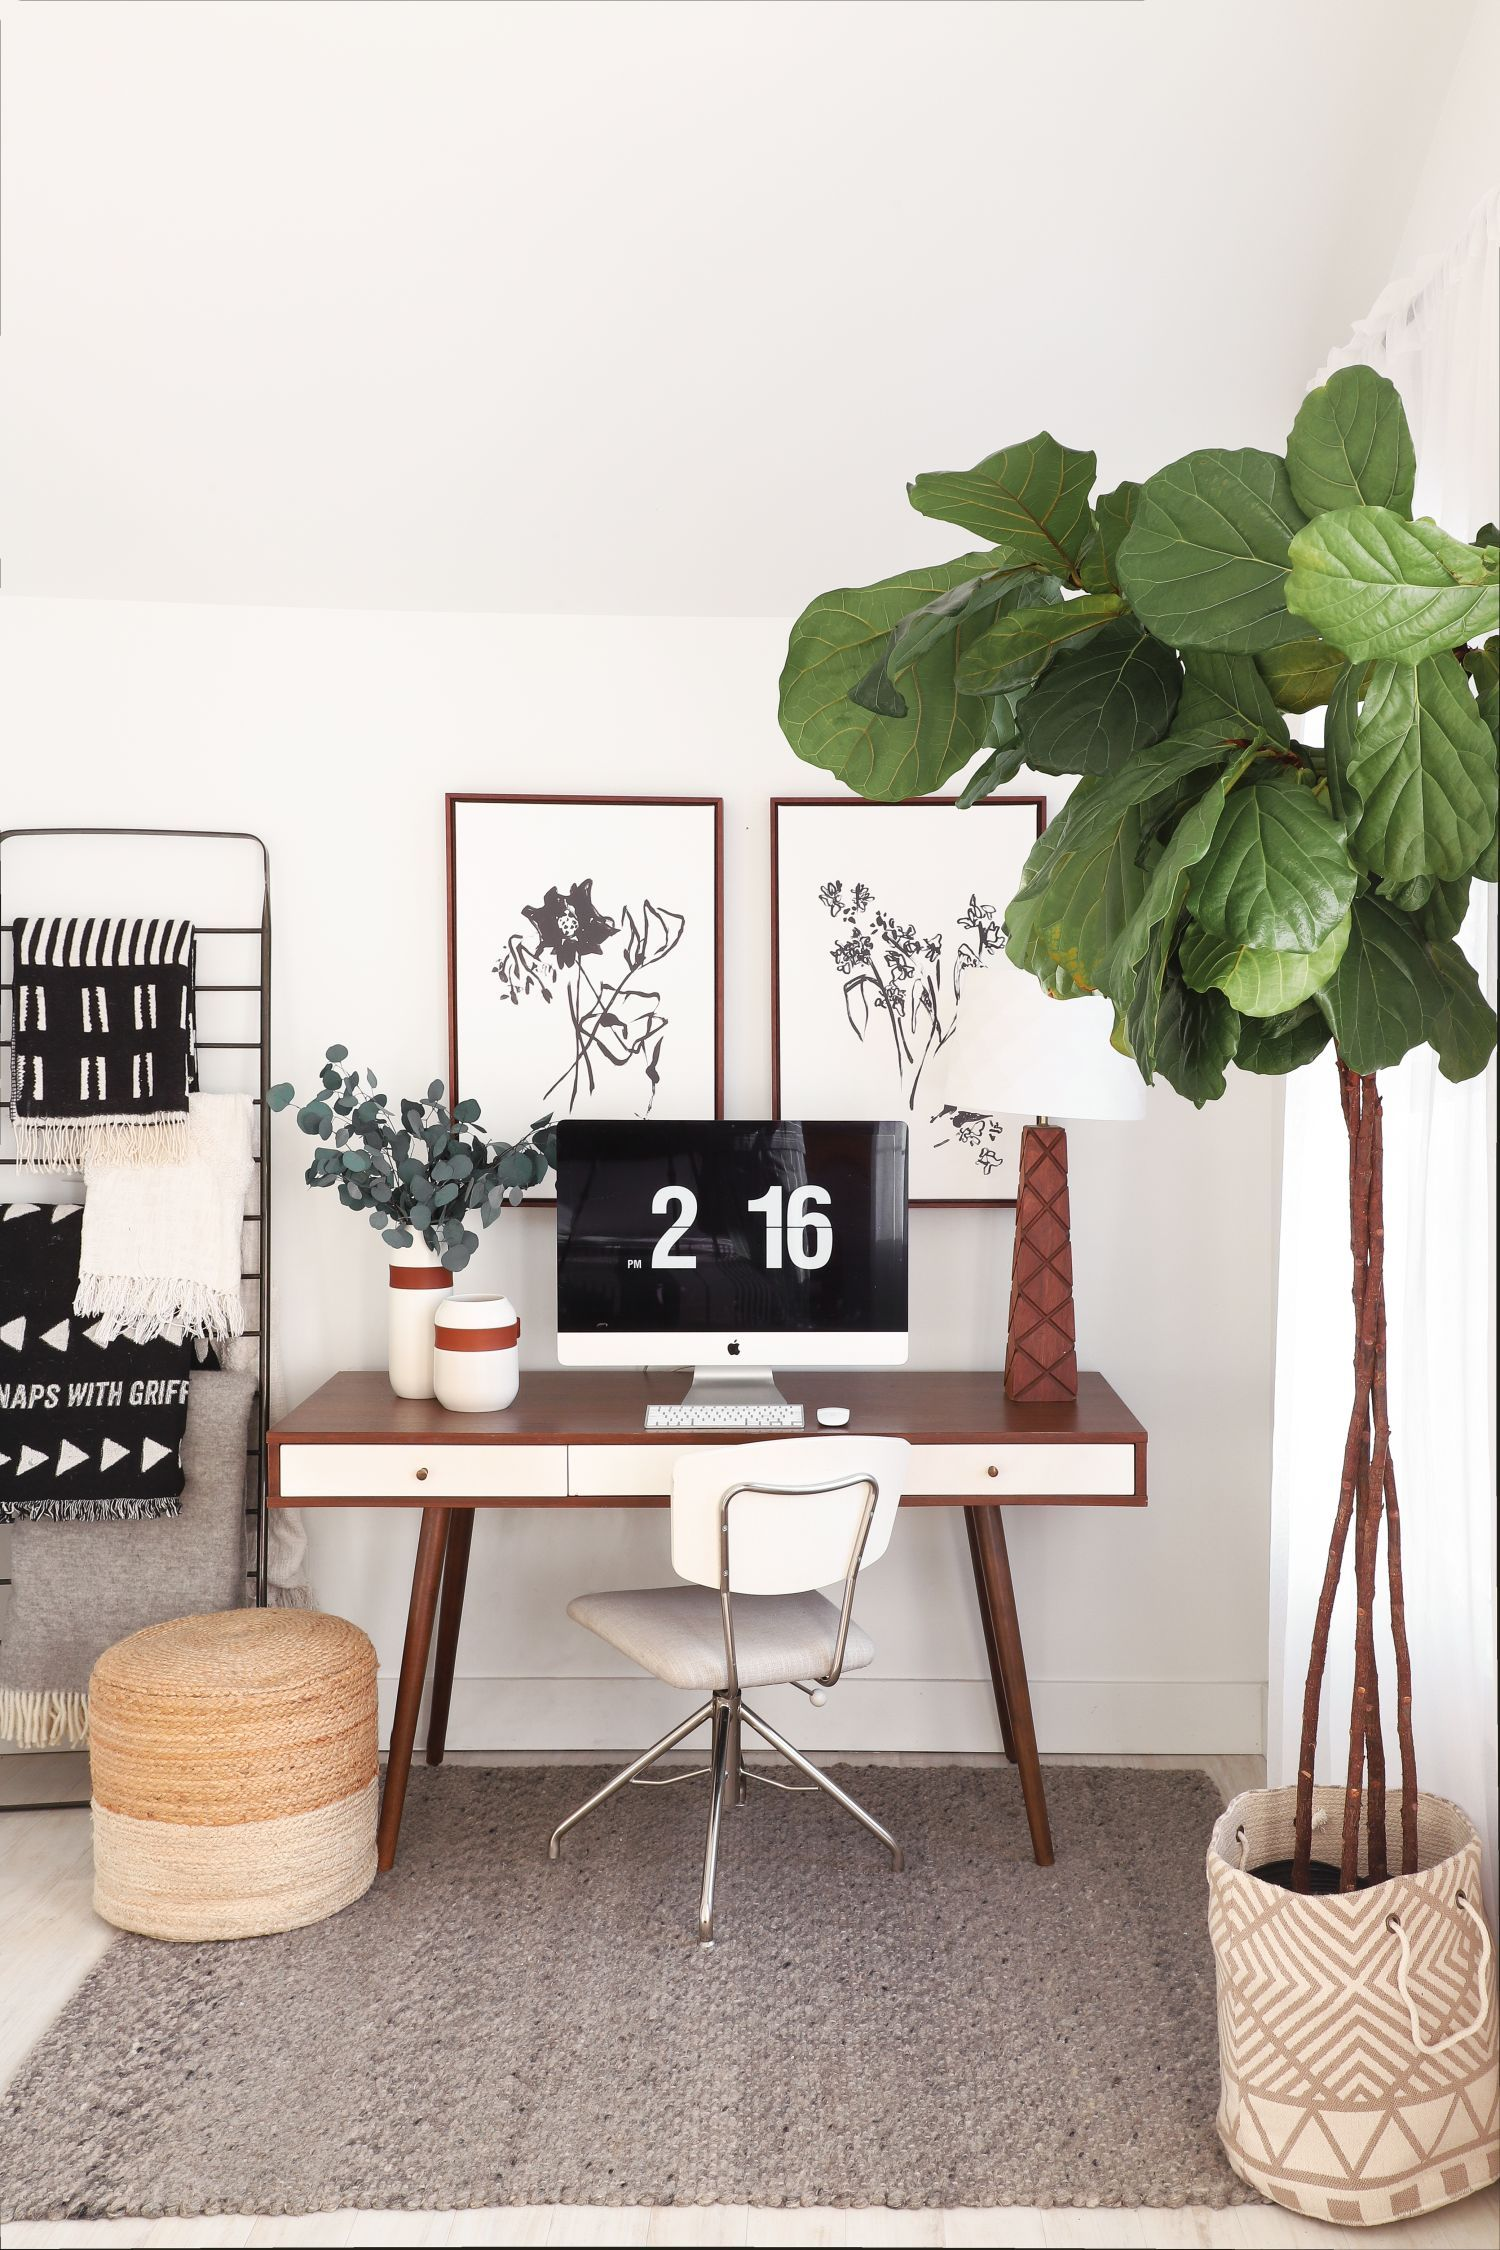 21 Ways To Declutter Your Brain With Just Pen And Paper Home Office Design Interior Room Decor